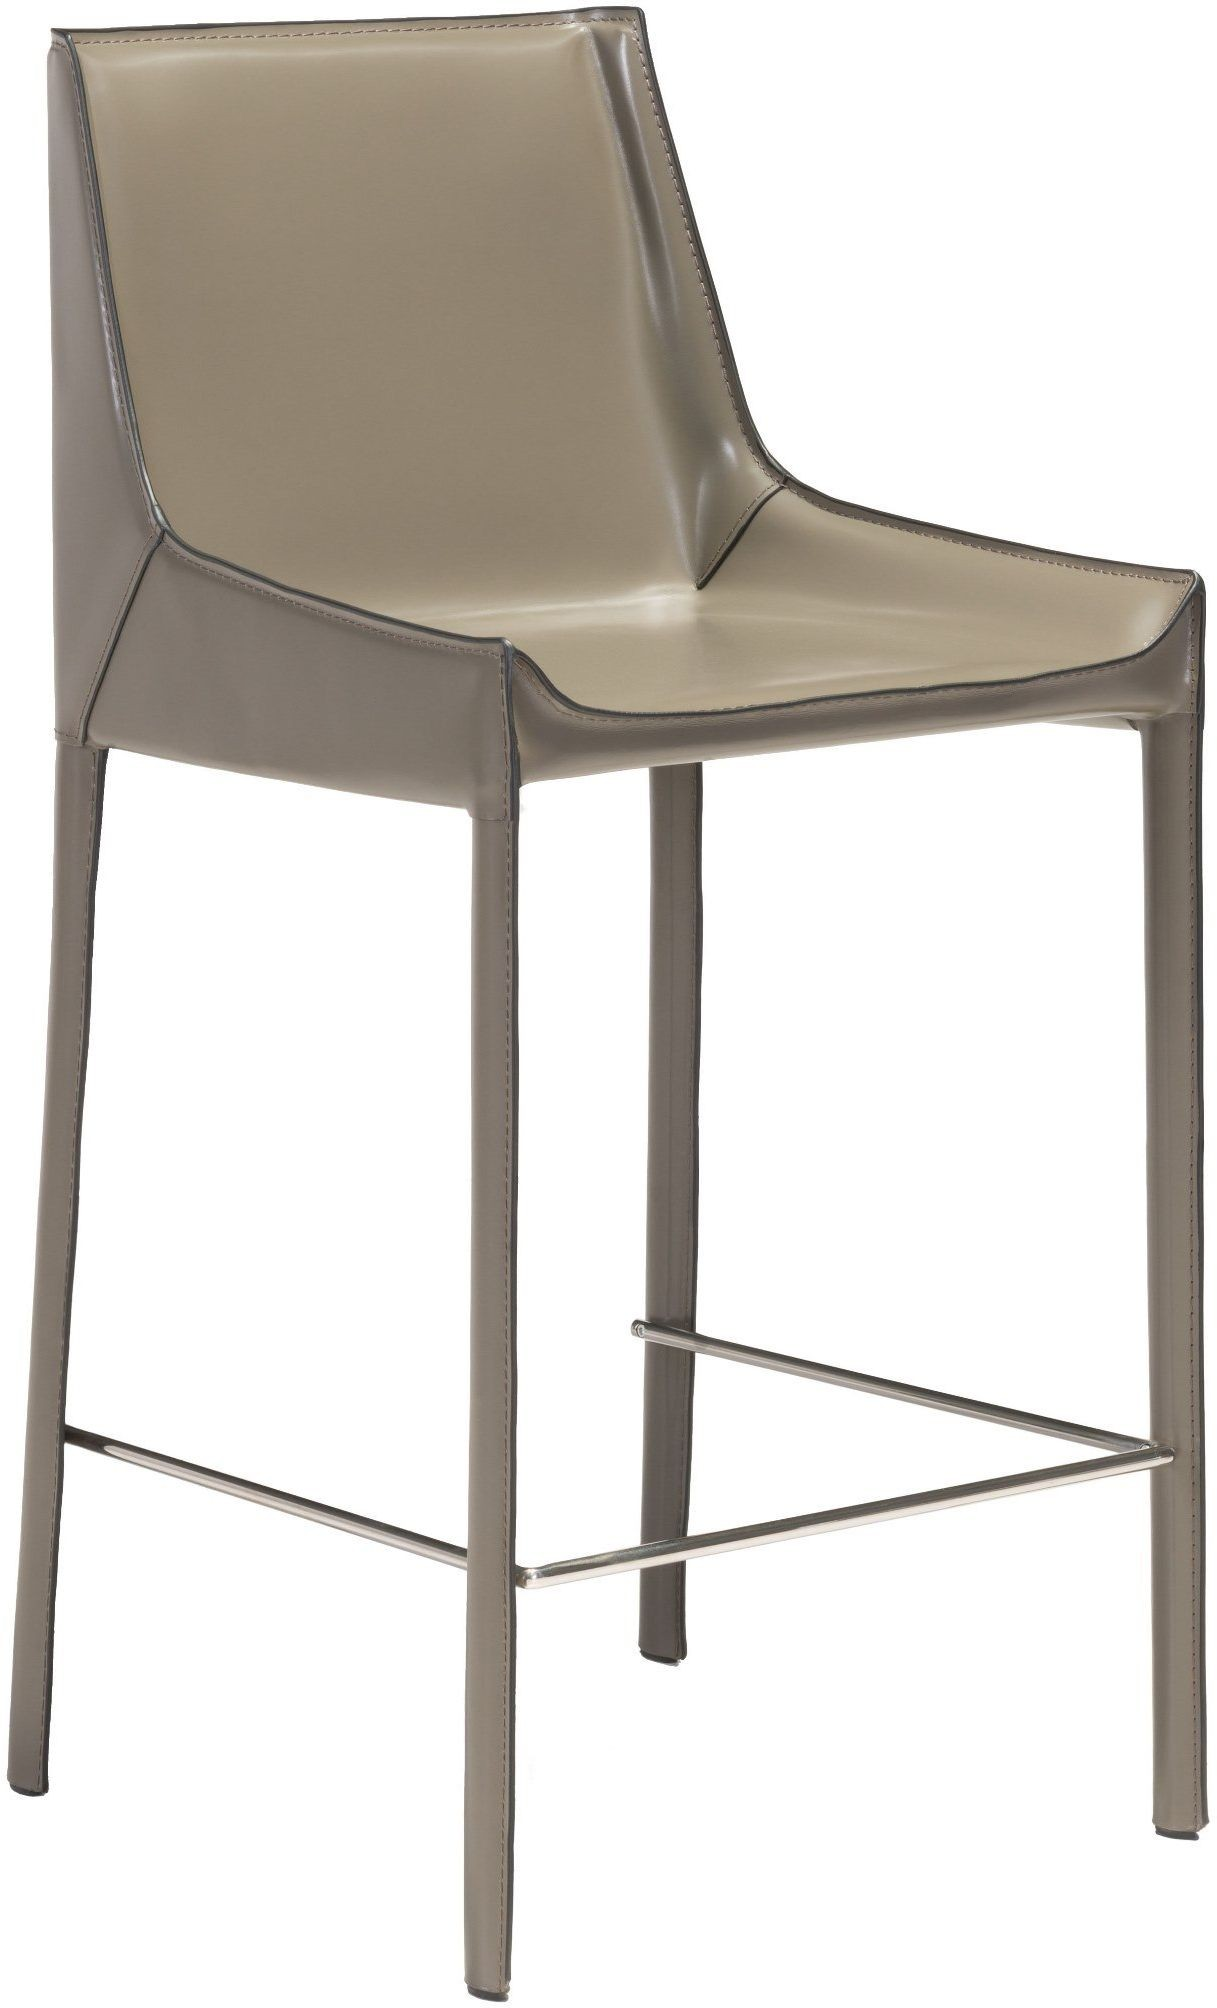 fashion bar chair stone gray